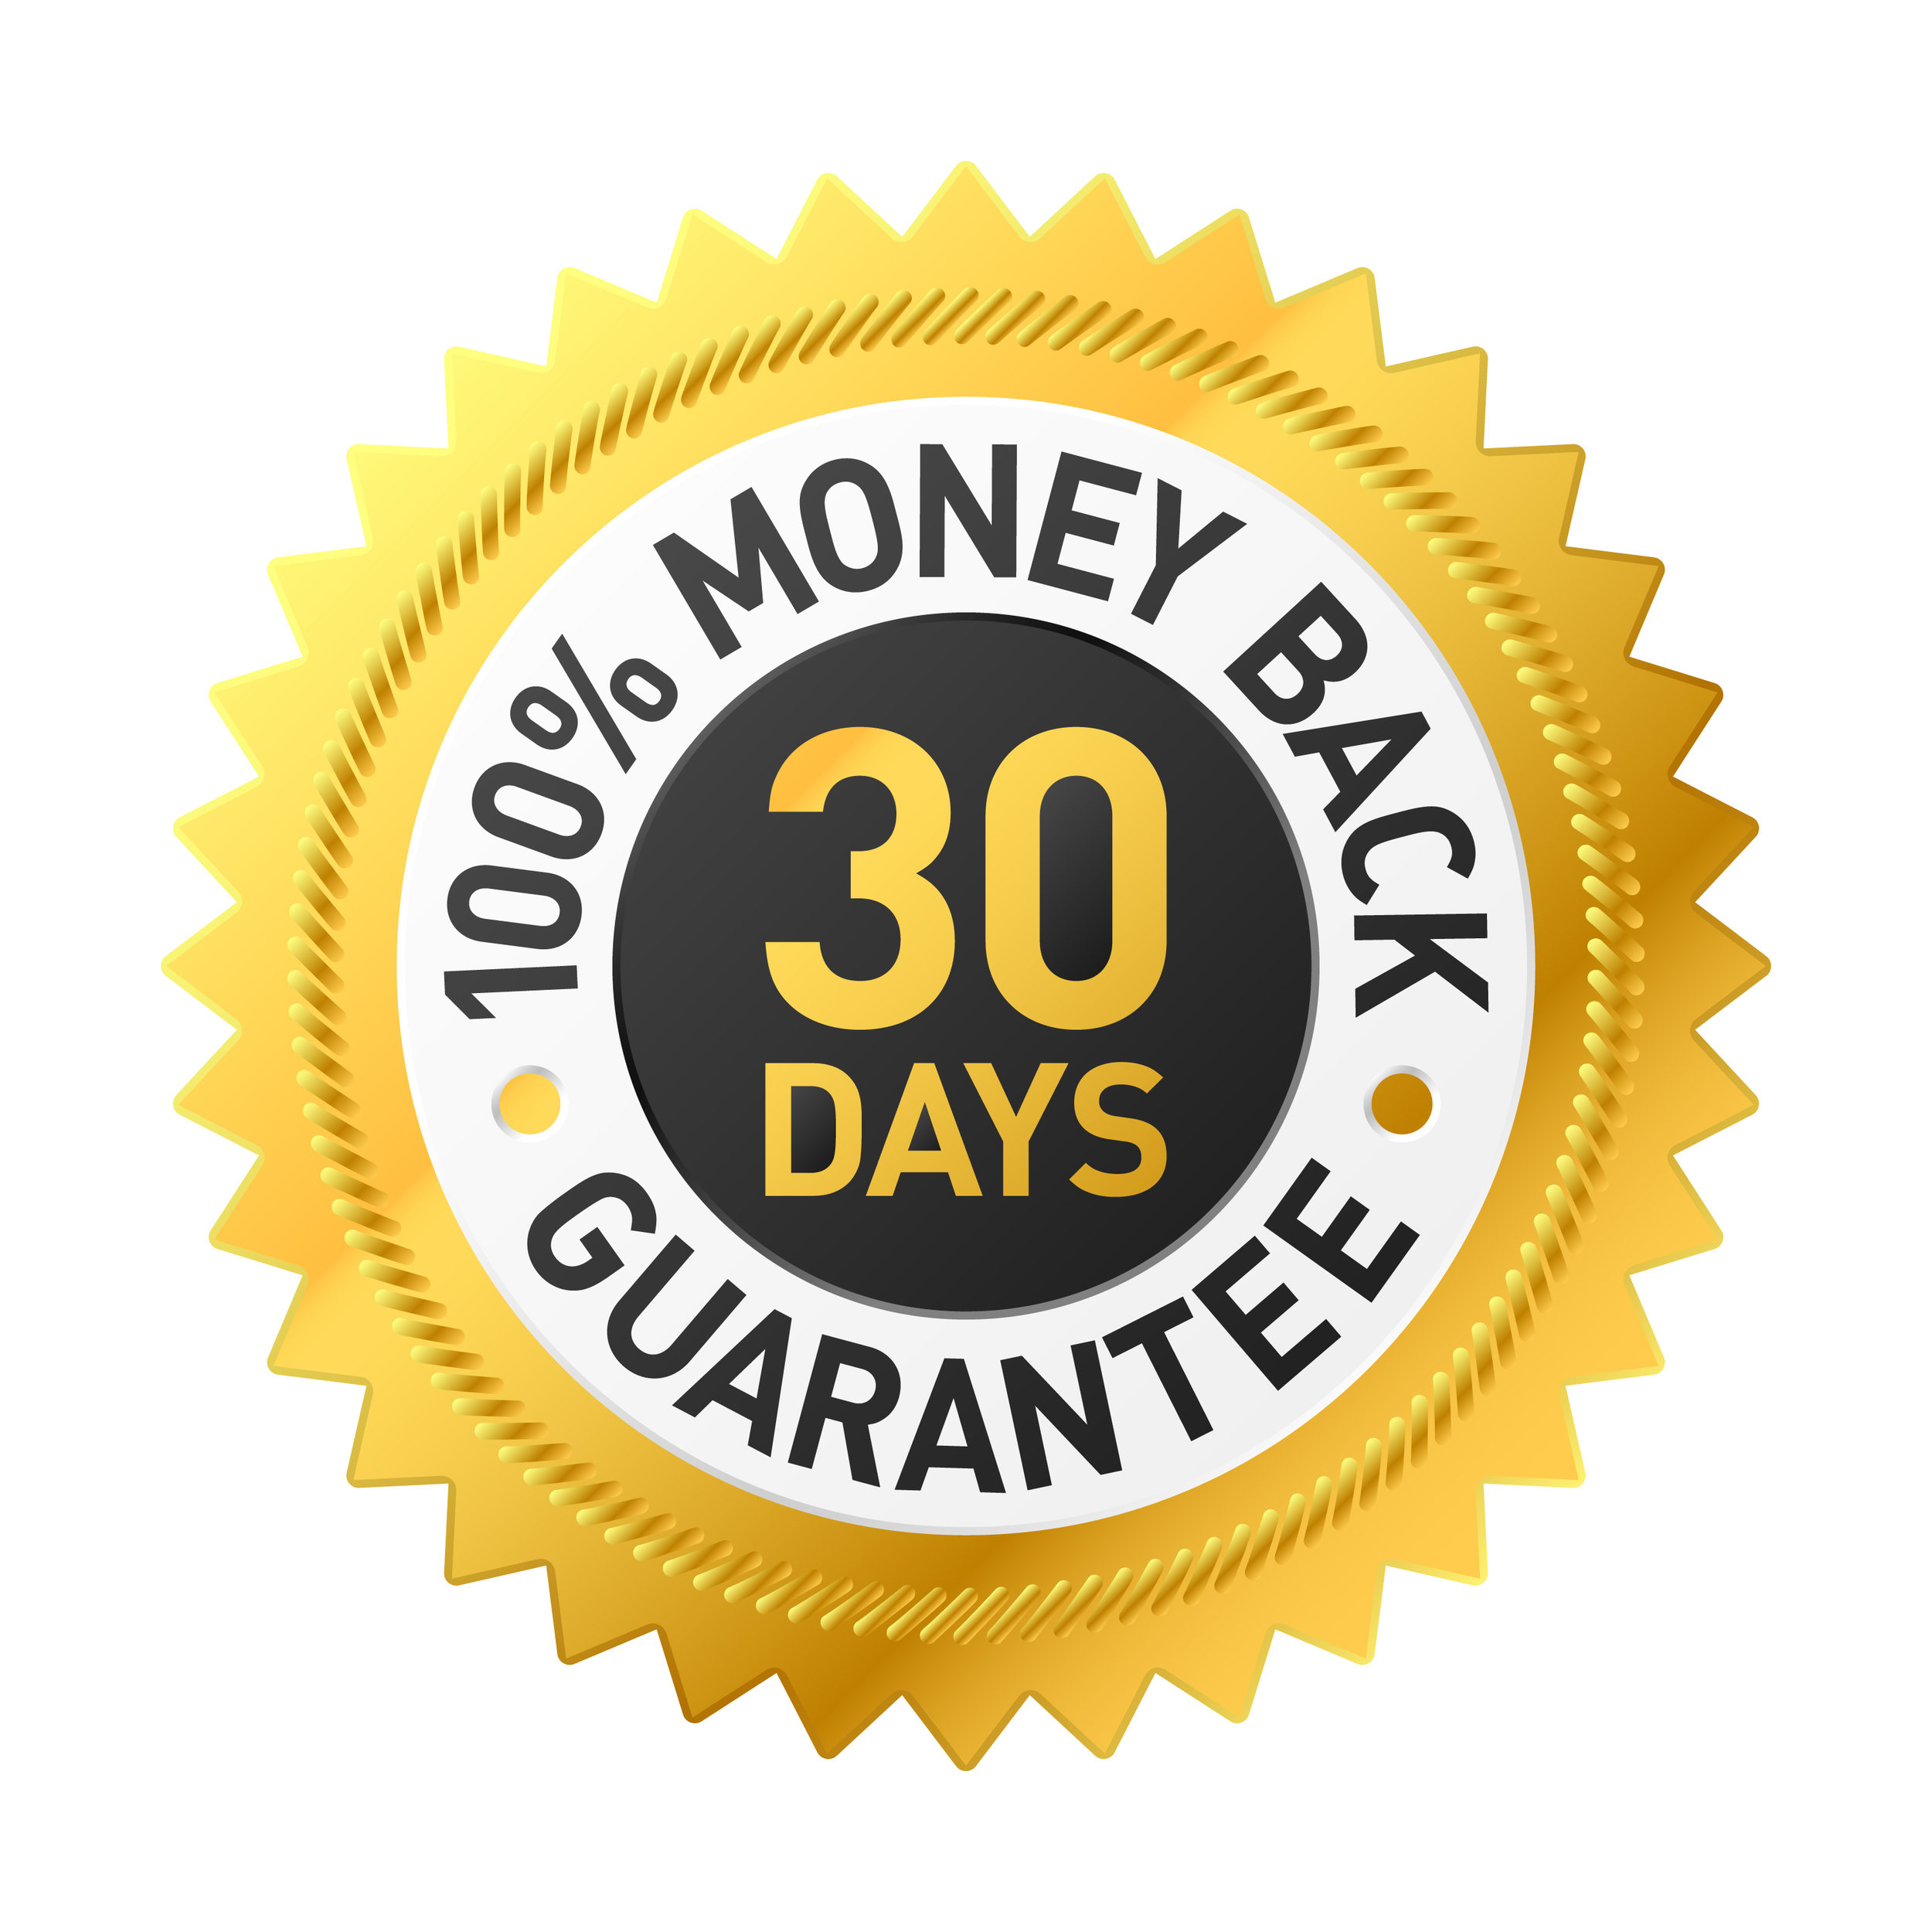 All our online programs come with a 30-day money back guarantee